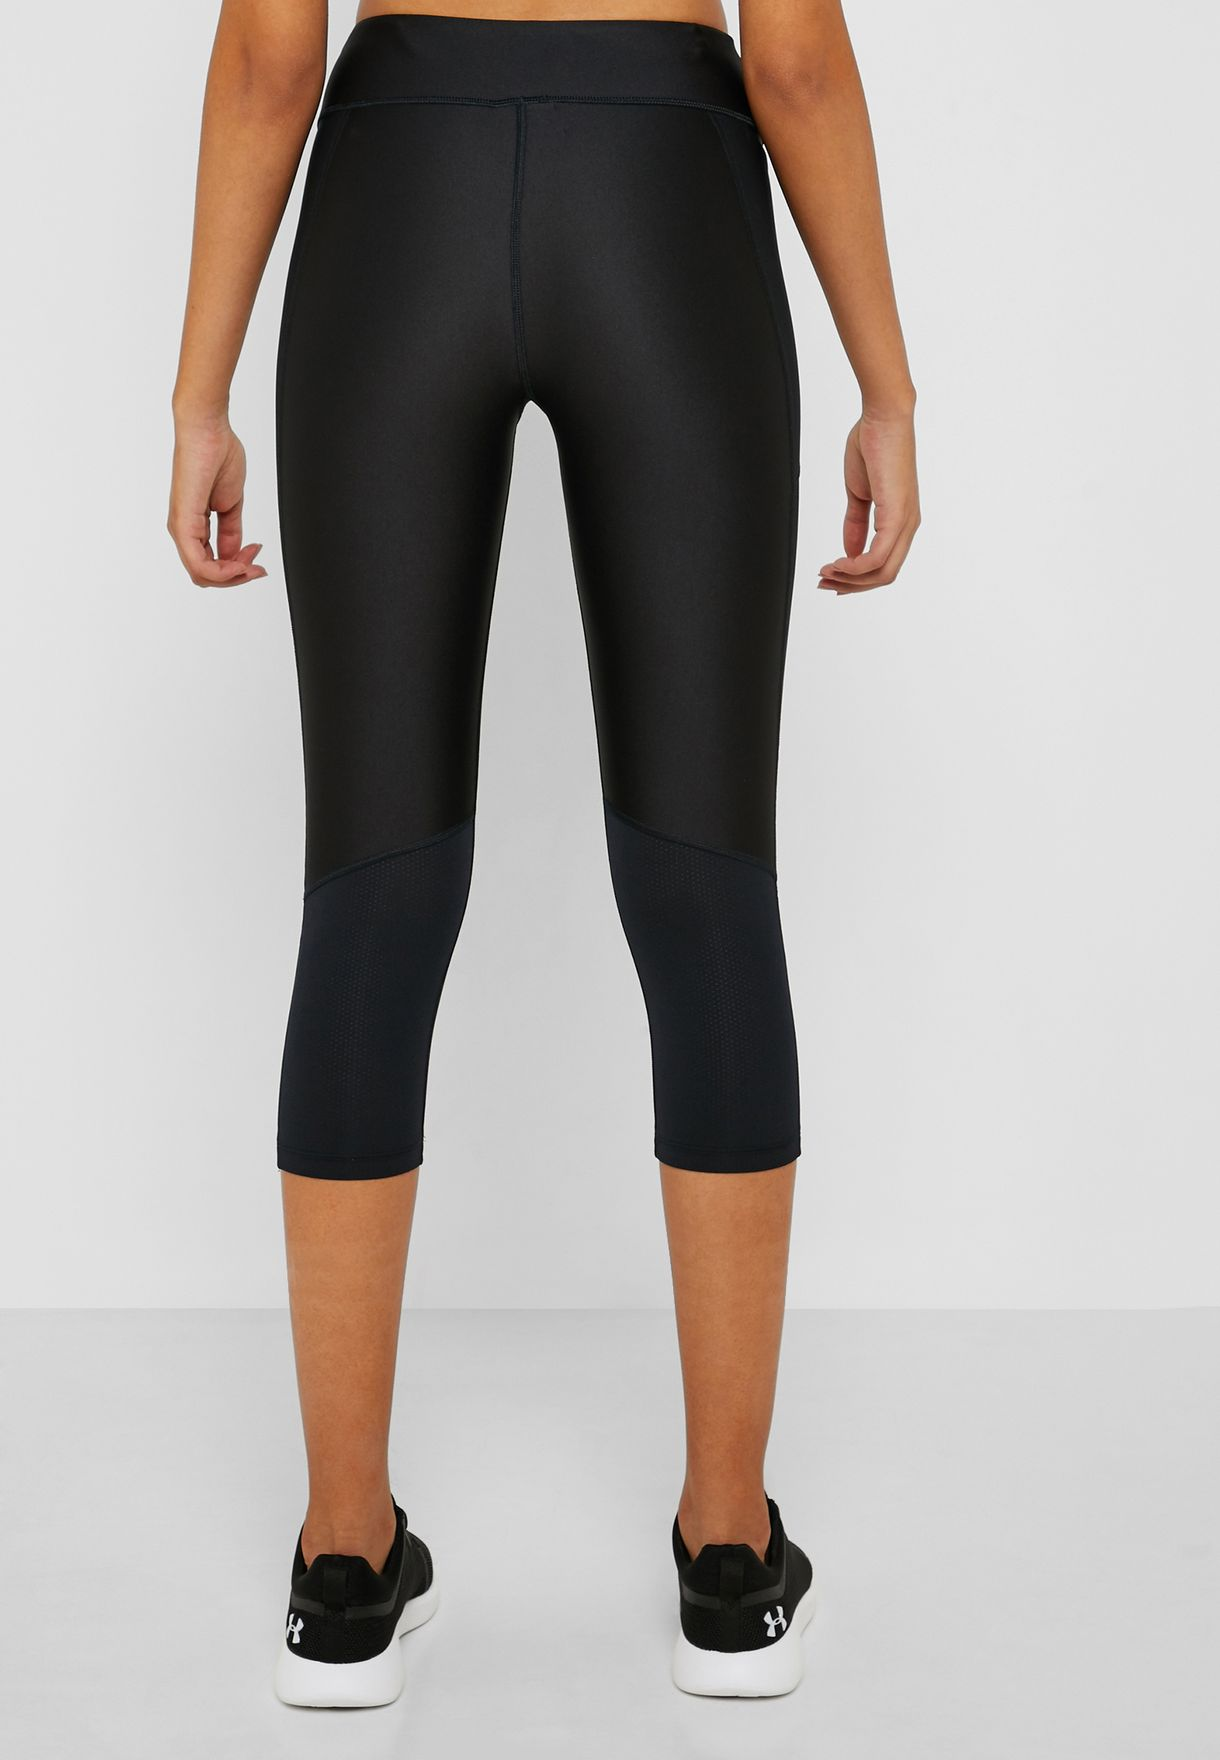 Speed Stride Capri